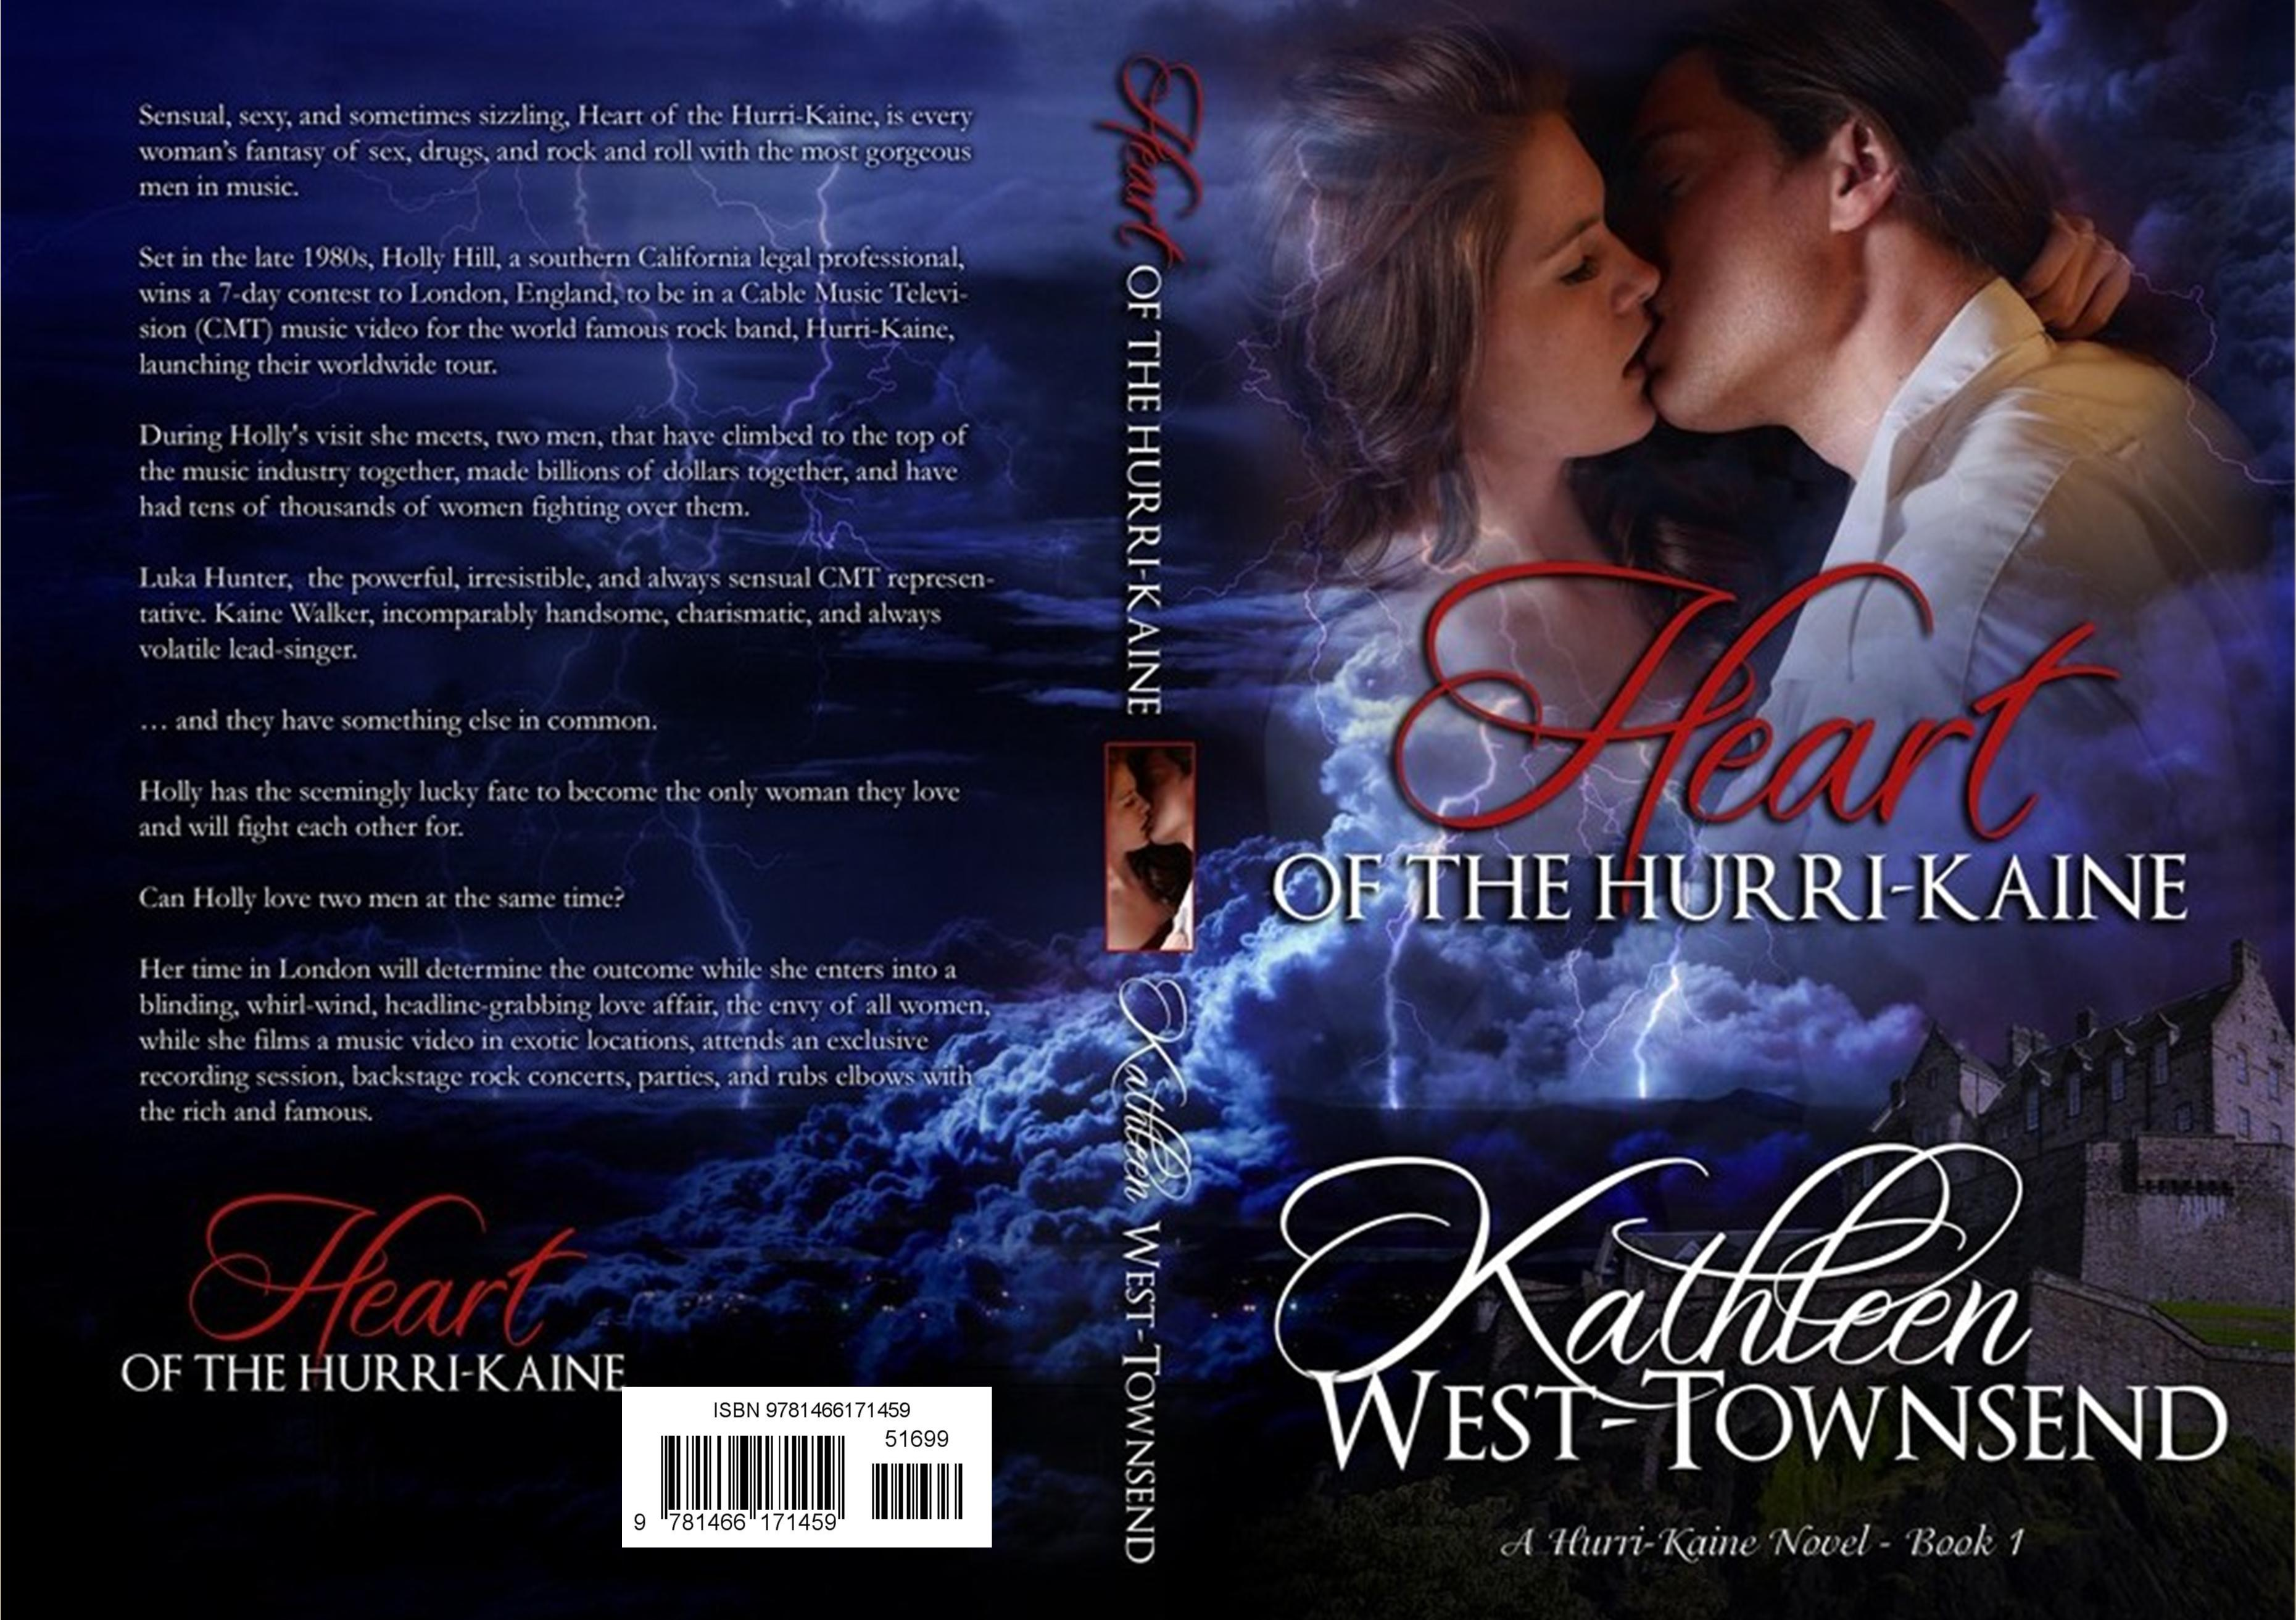 The Heart of the Hurri-Kaine (Book One The Hurri-Kaine Series) cover image